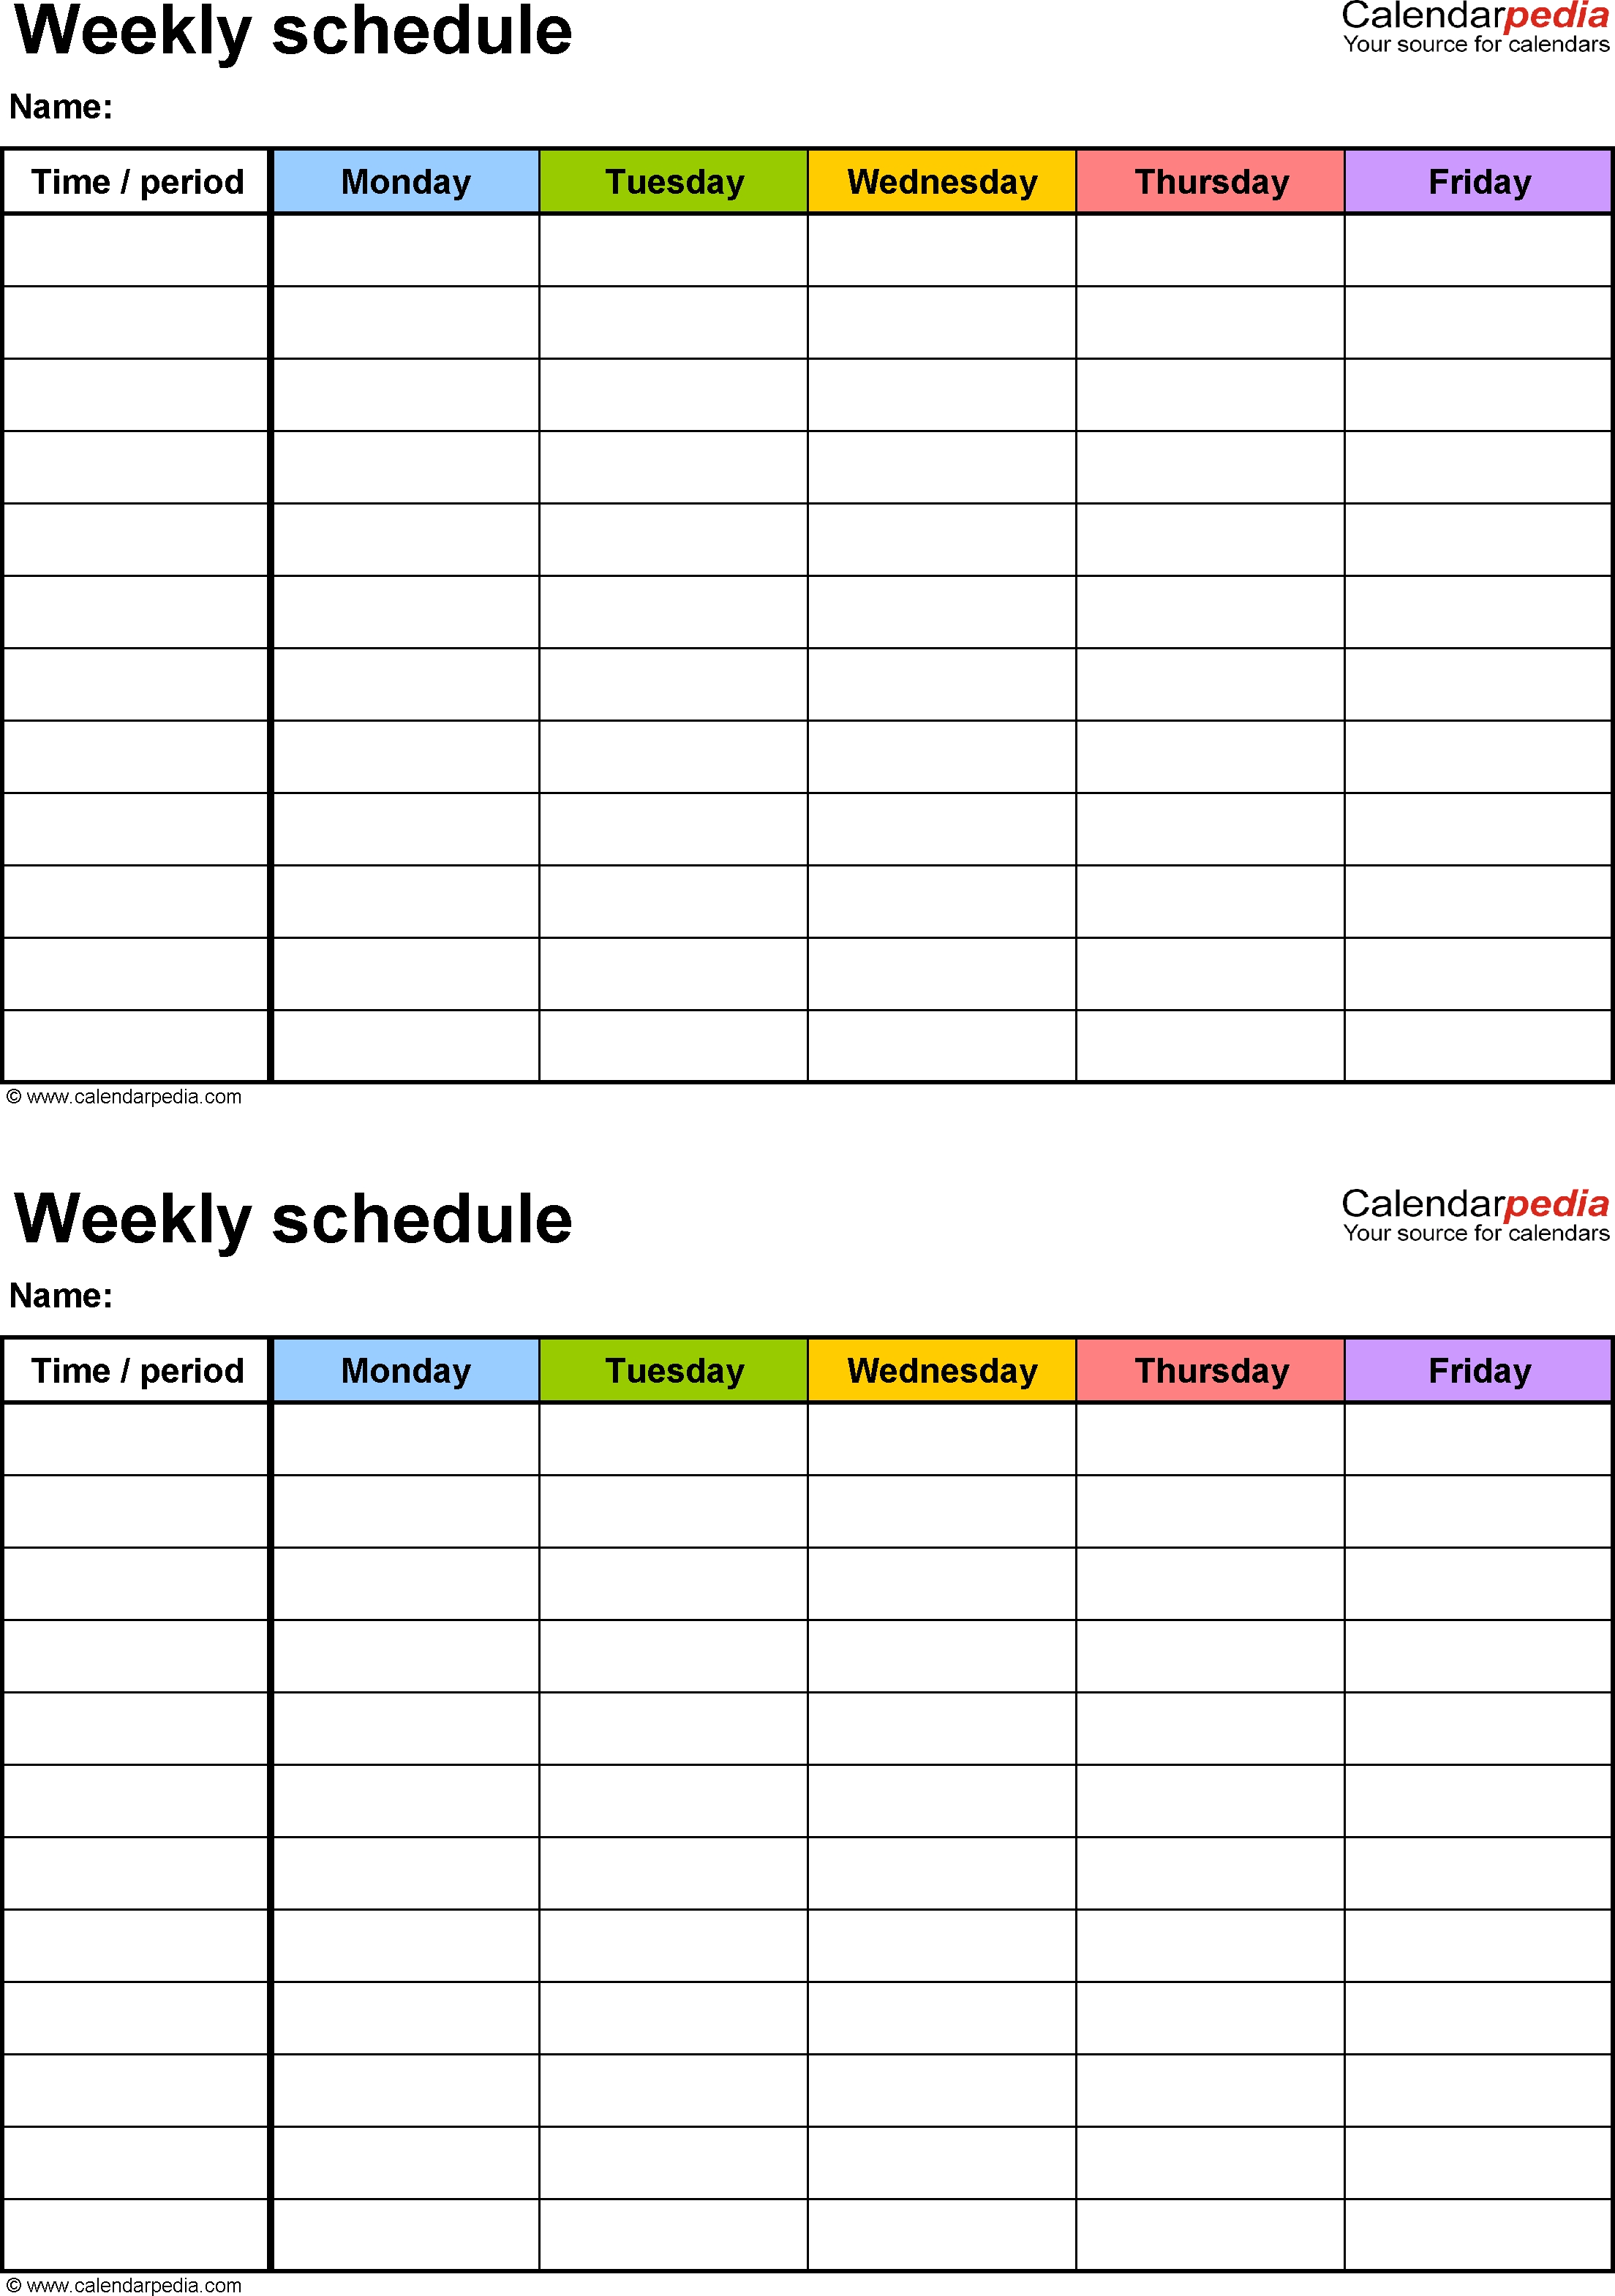 Free Weekly Schedule Templates For Pdf - 18 Templates with regard to Large 7 Day Printable Schedules